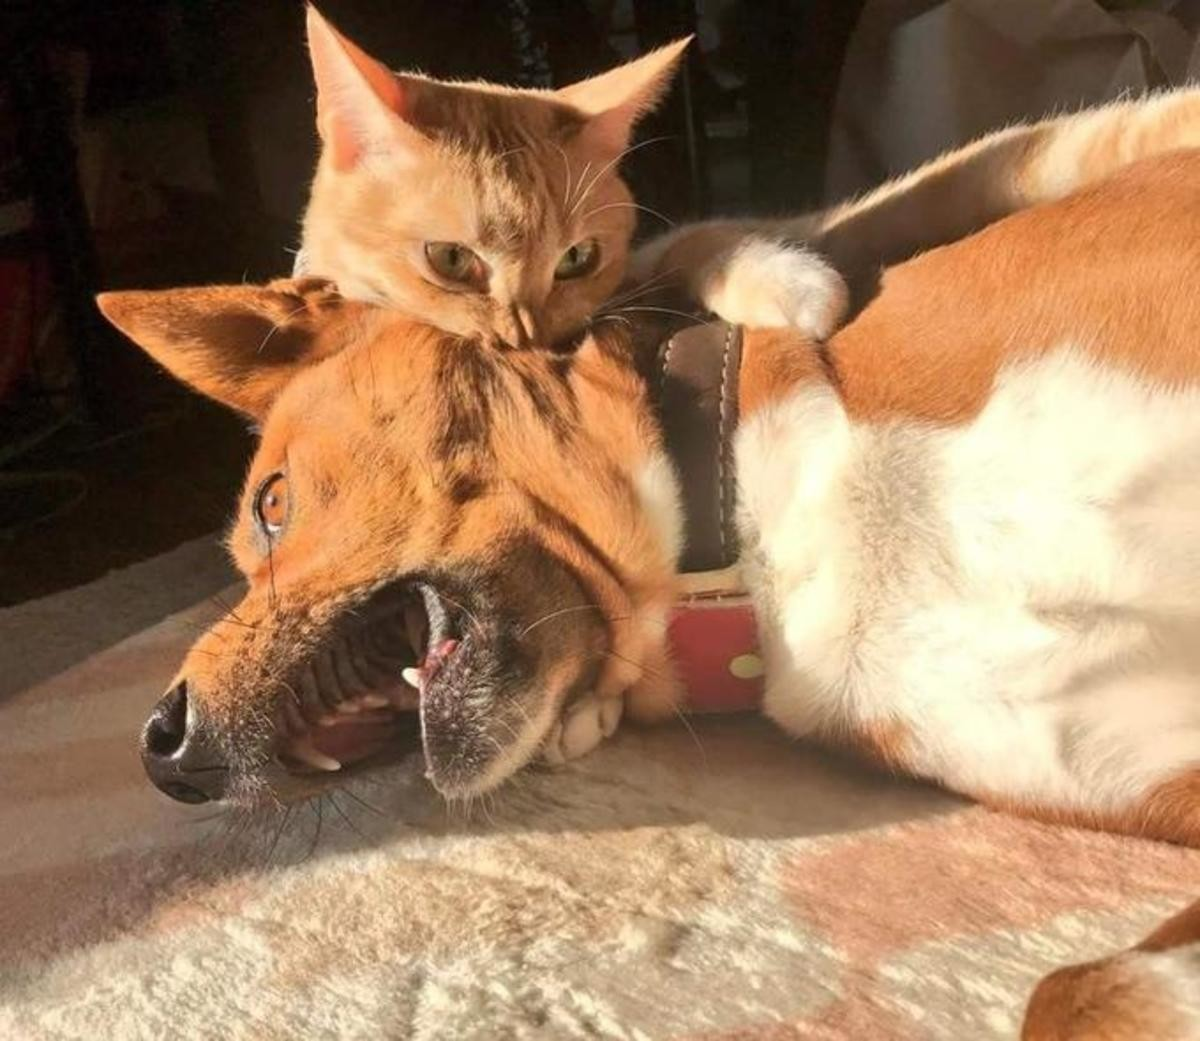 Accidental Renaissance painting - cat vs dog. .. Dang vampires